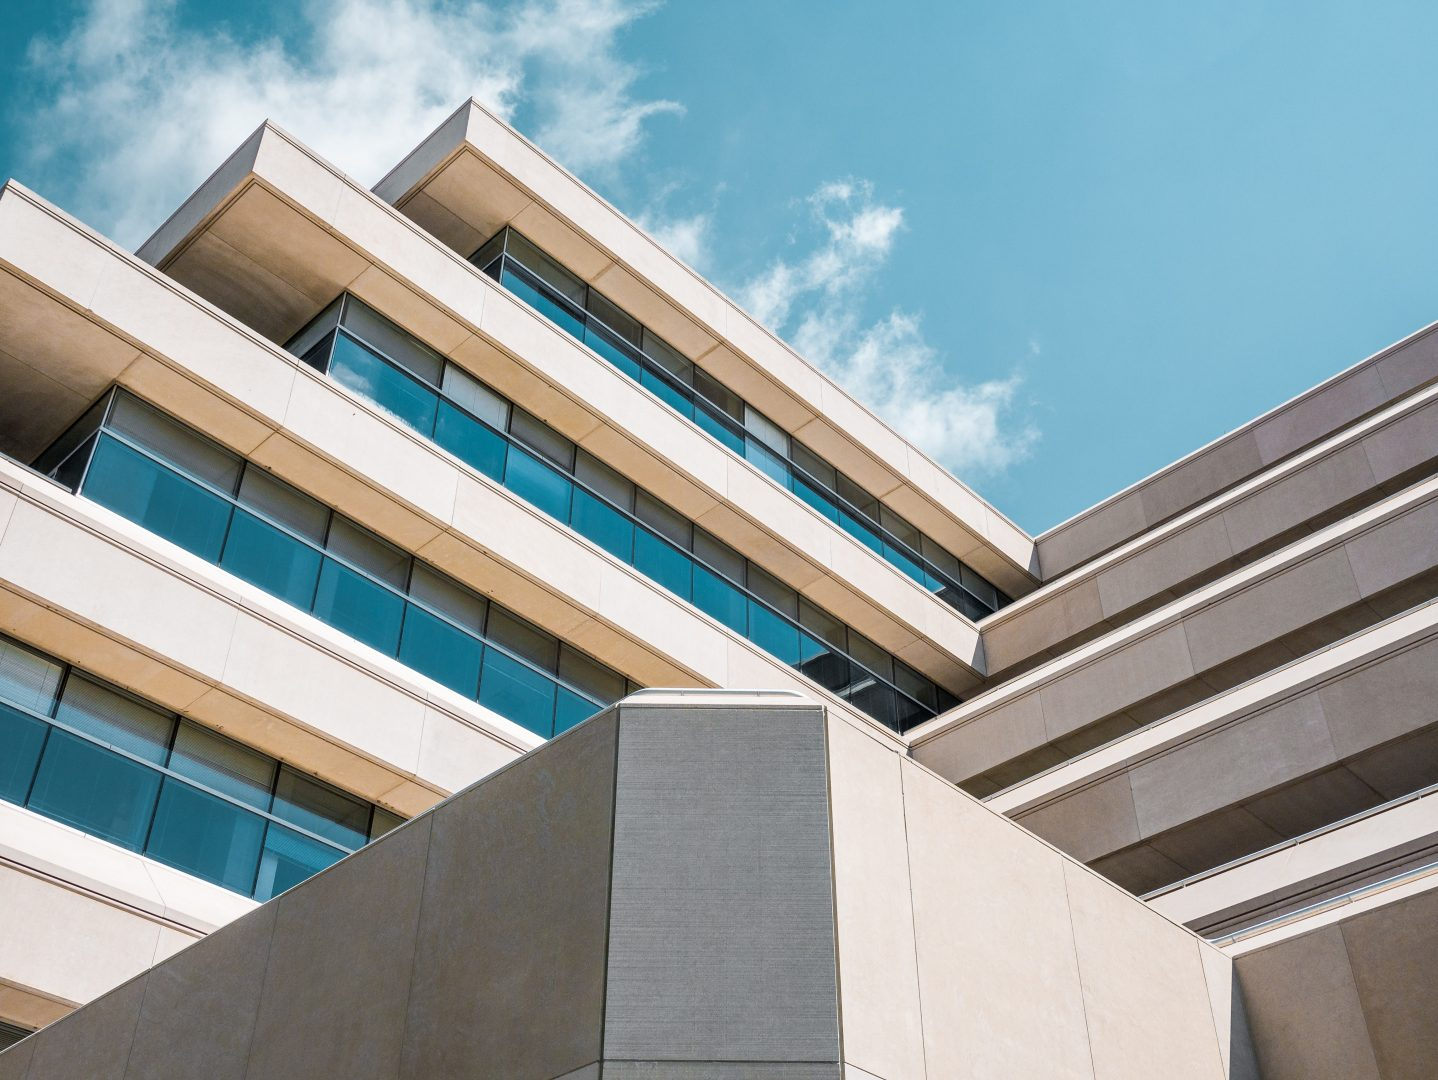 low angle photo of beige concrete building under cloudy sky